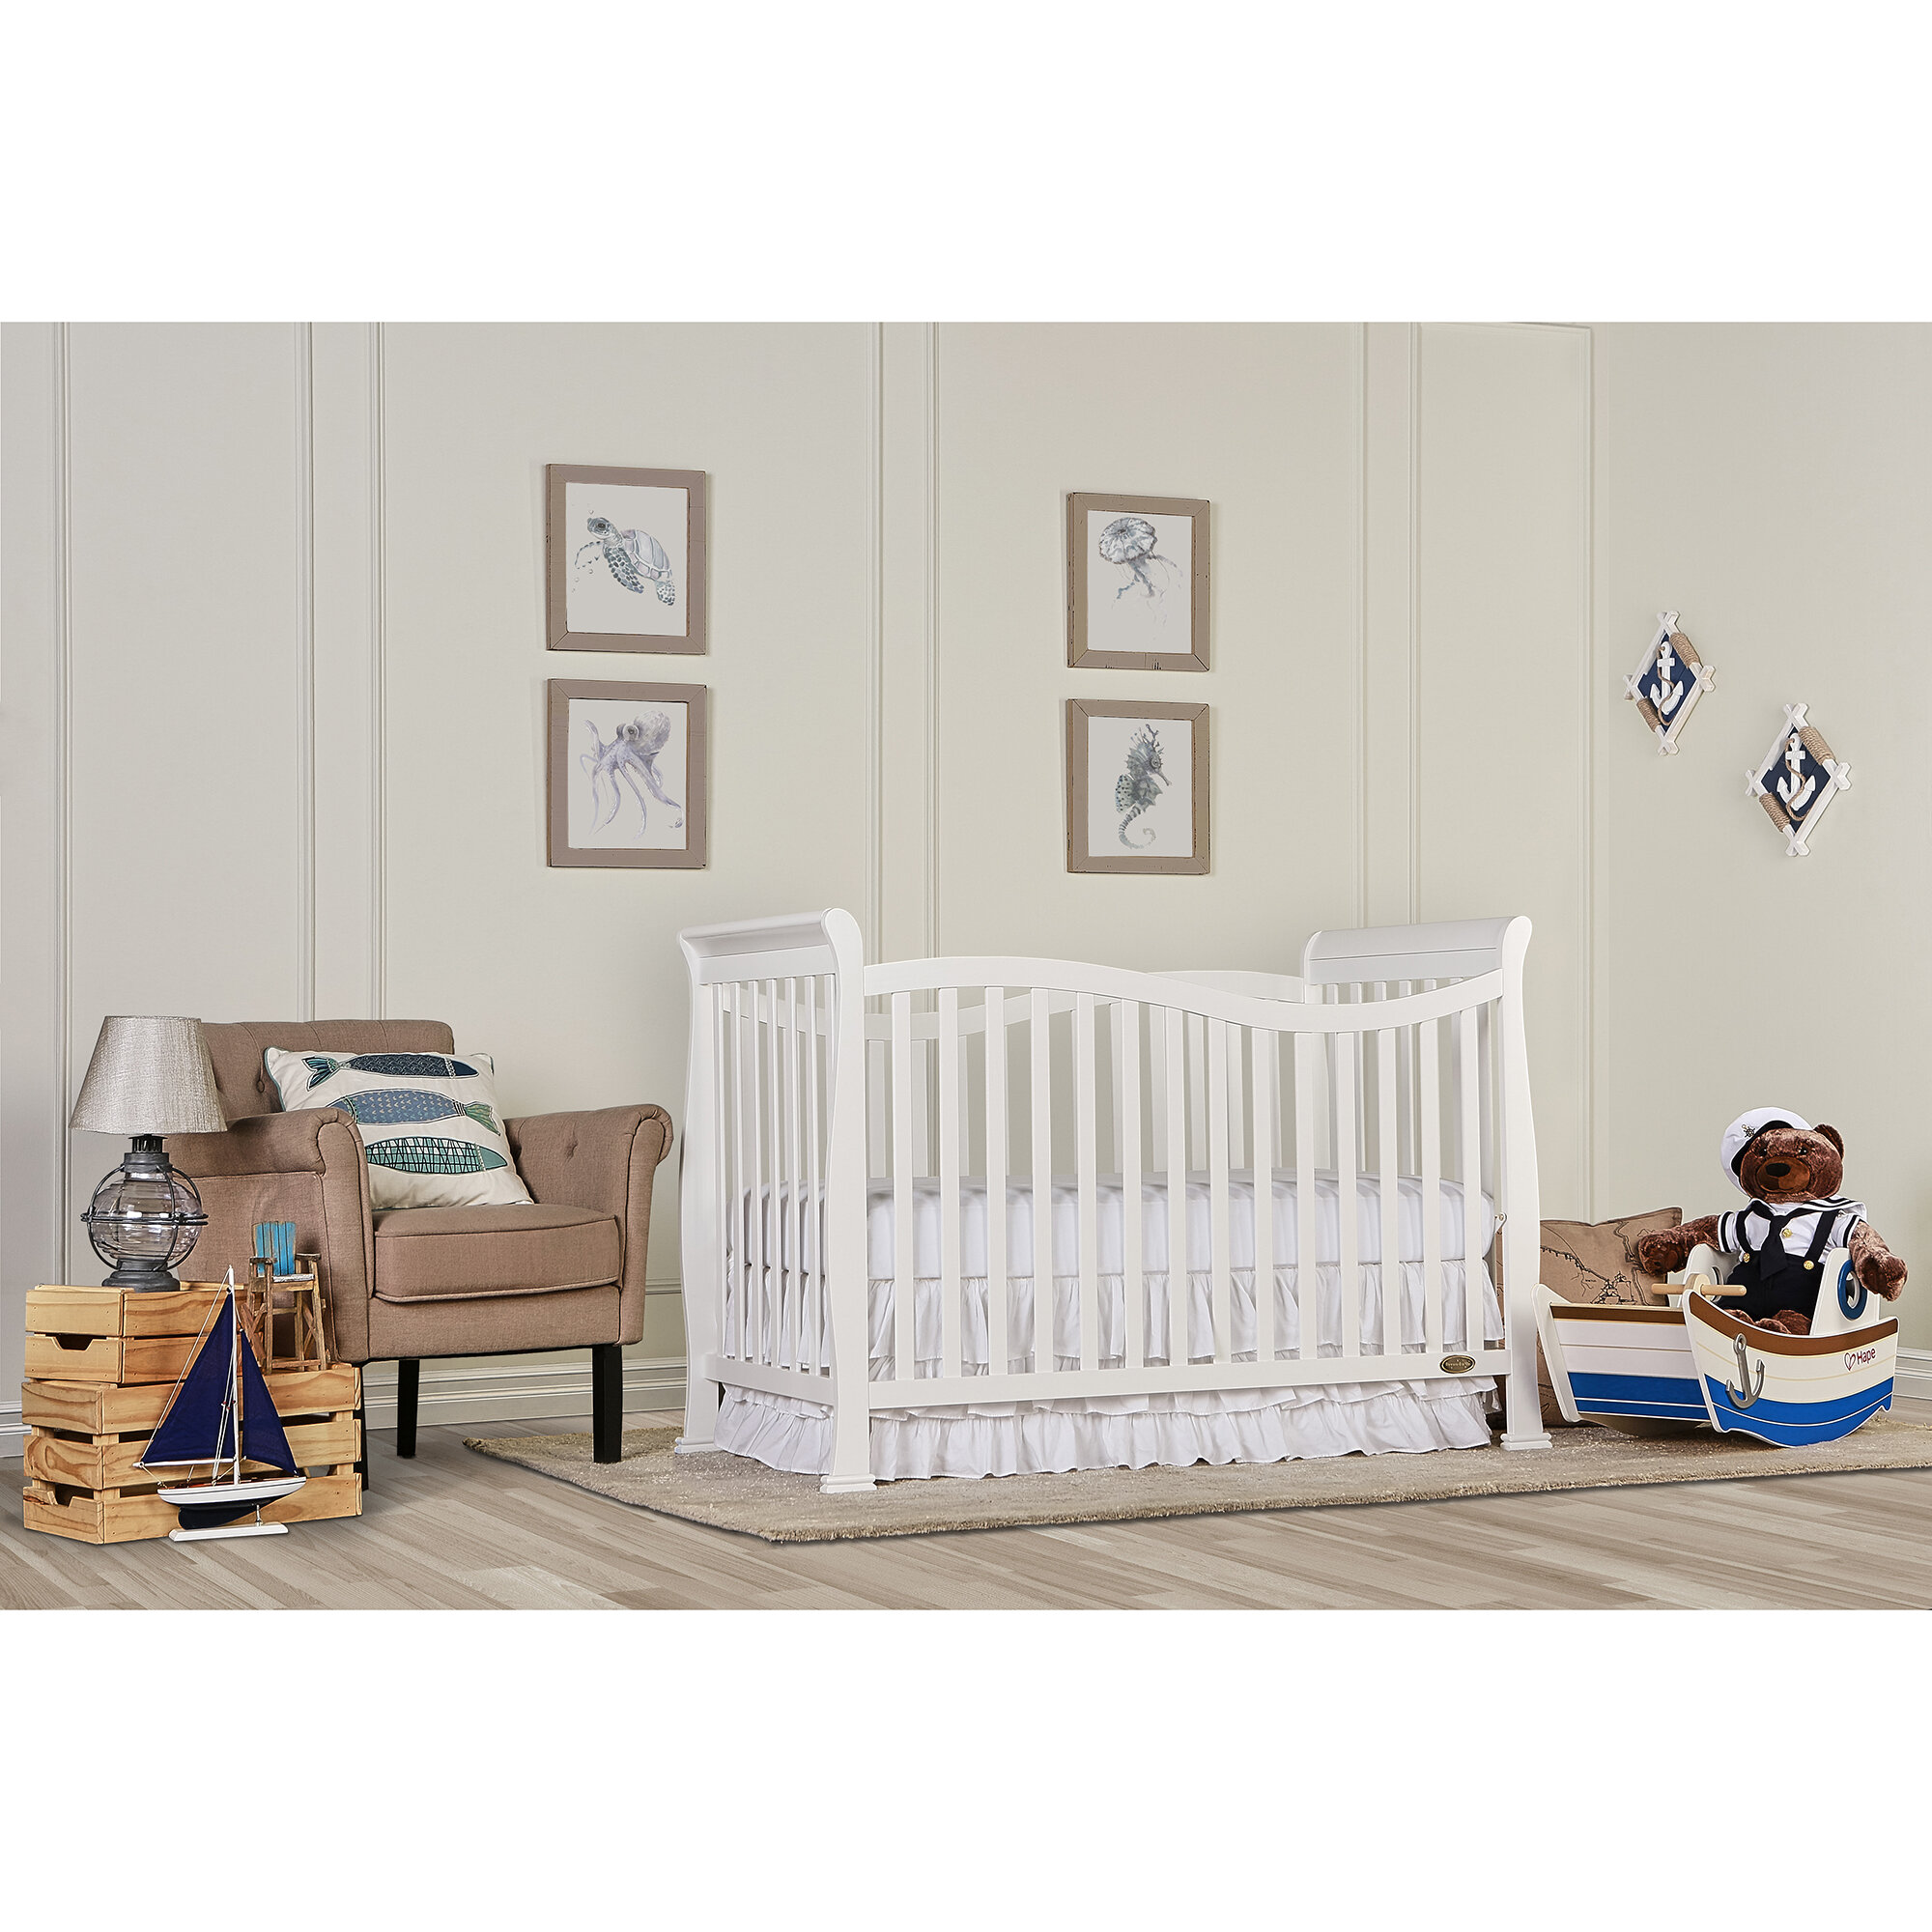 crib into turns that toddler bed of lovely stock